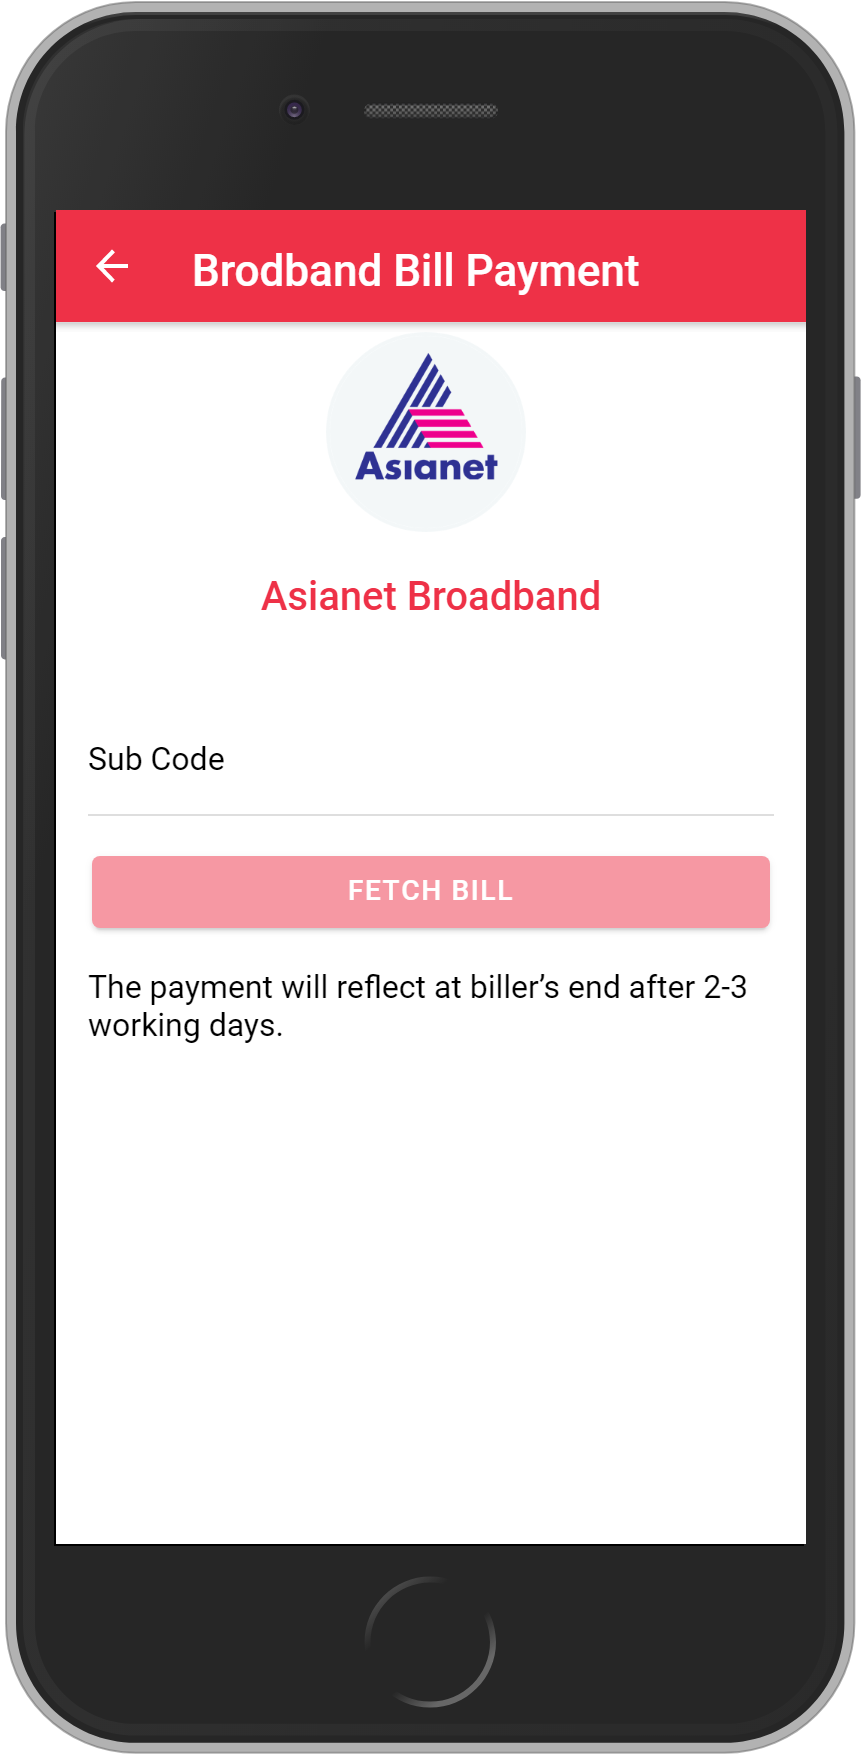 Get UNLIMITED <b>0.1%</b> CASHBACK on Asianet Broadband Bill Payment.